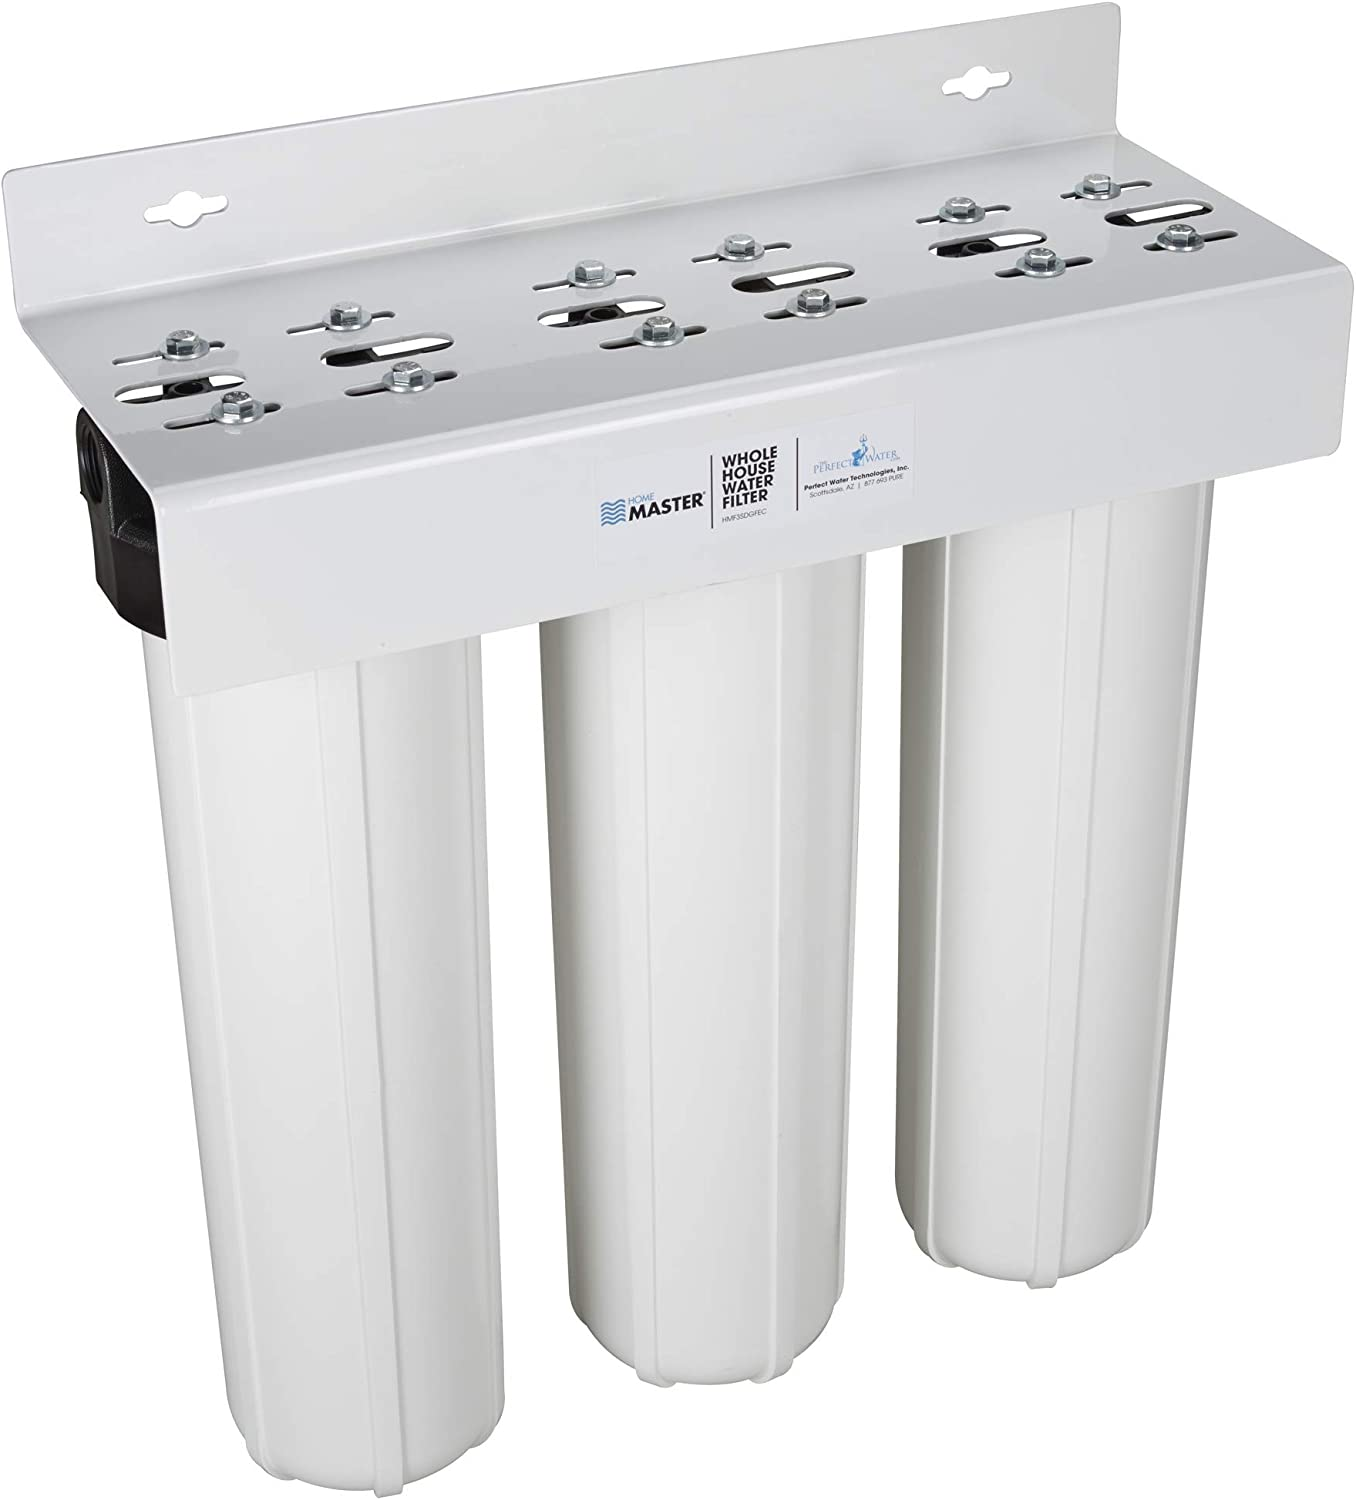 Home Spring new work Master Whole House Beauty products Three with Water Stage Filtration System